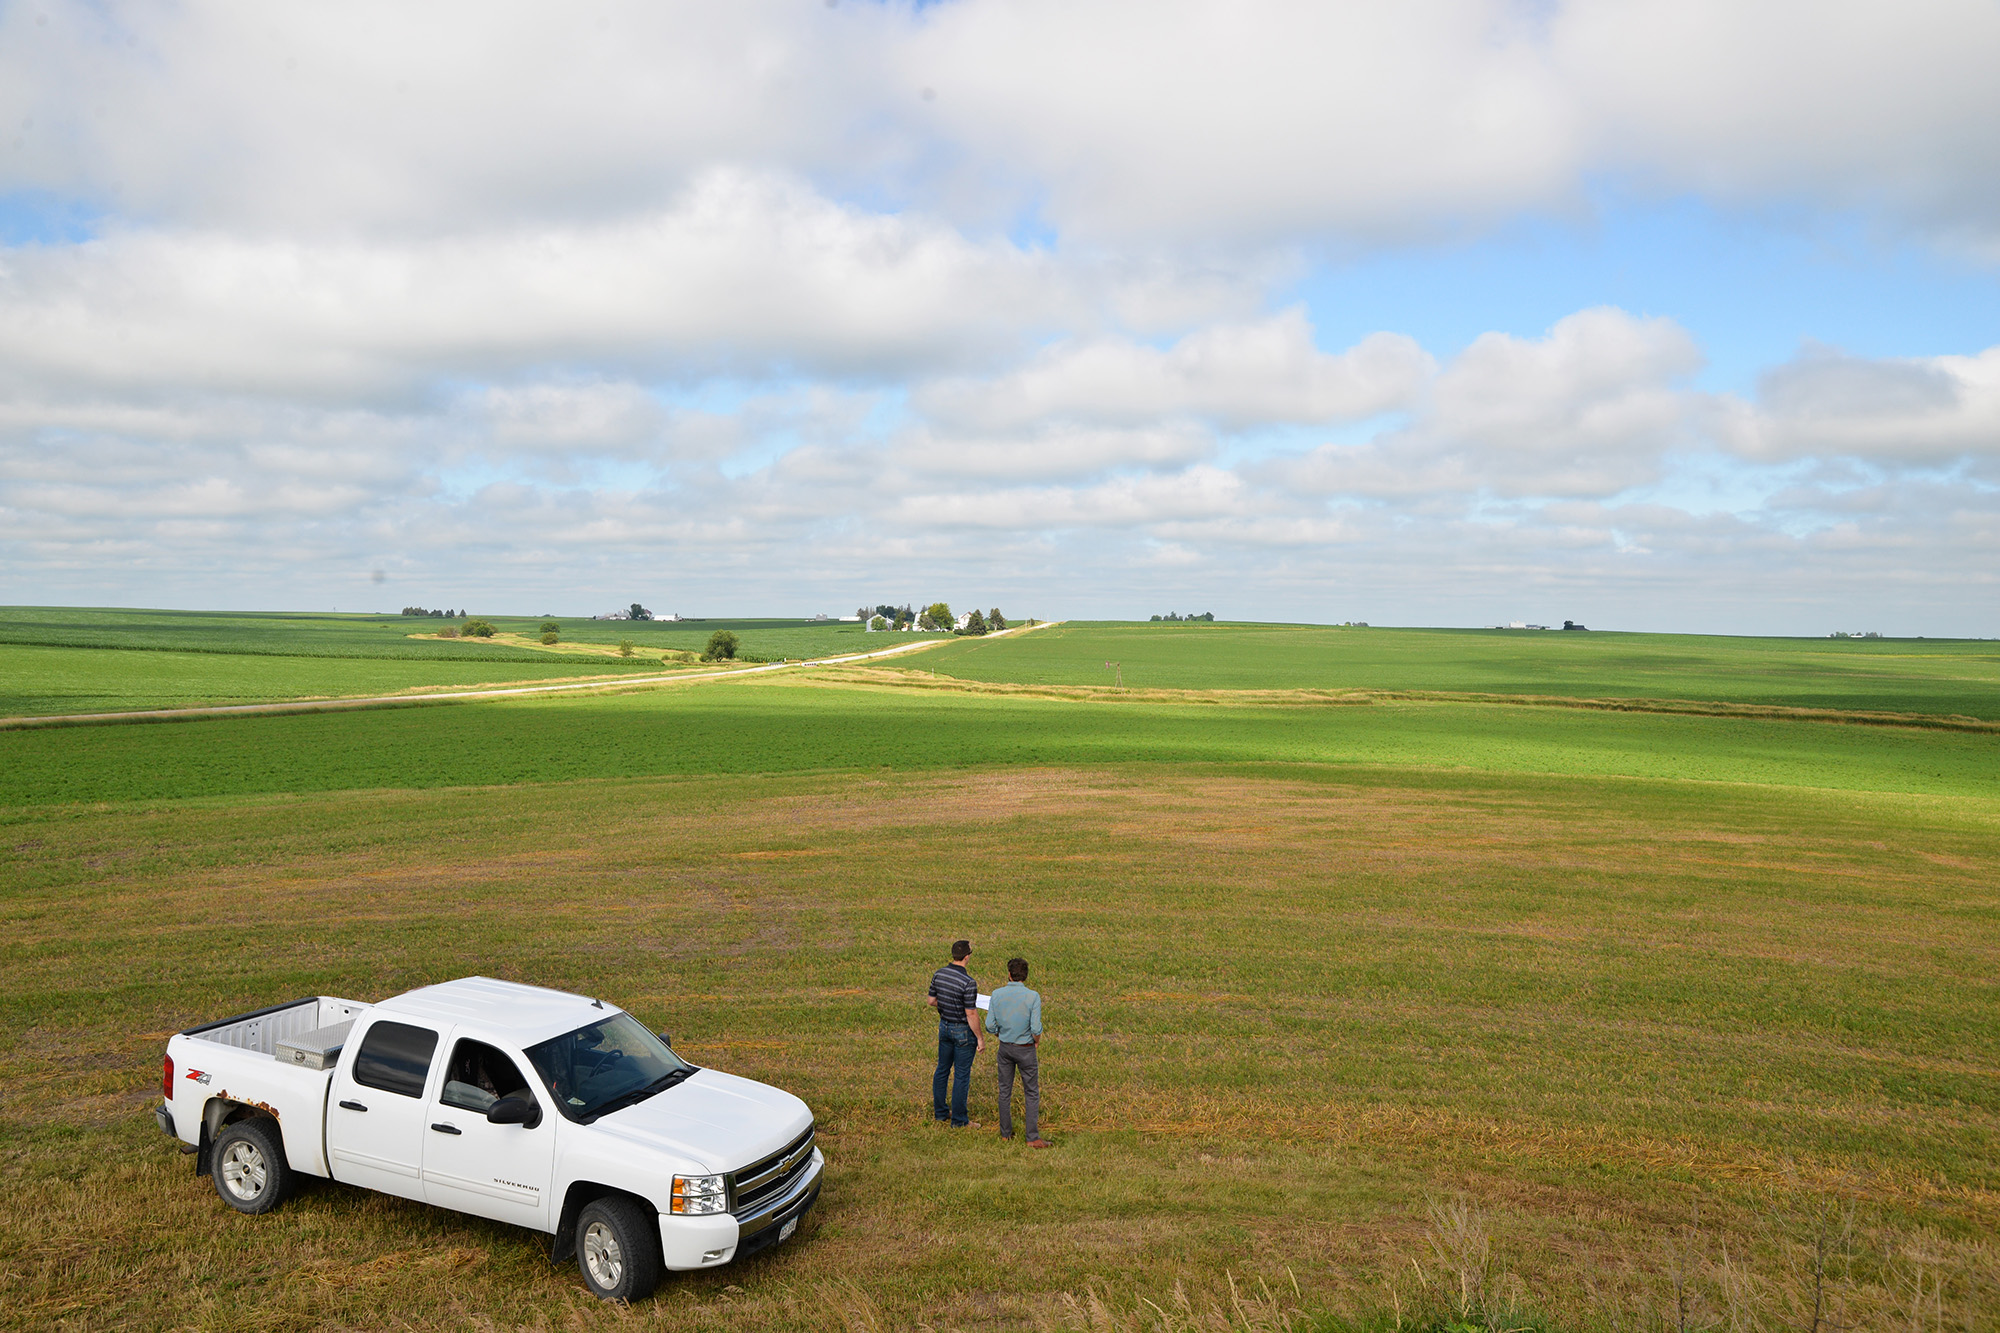 two men stand in a field and discuss the watershed and landscape above the community of Vinton